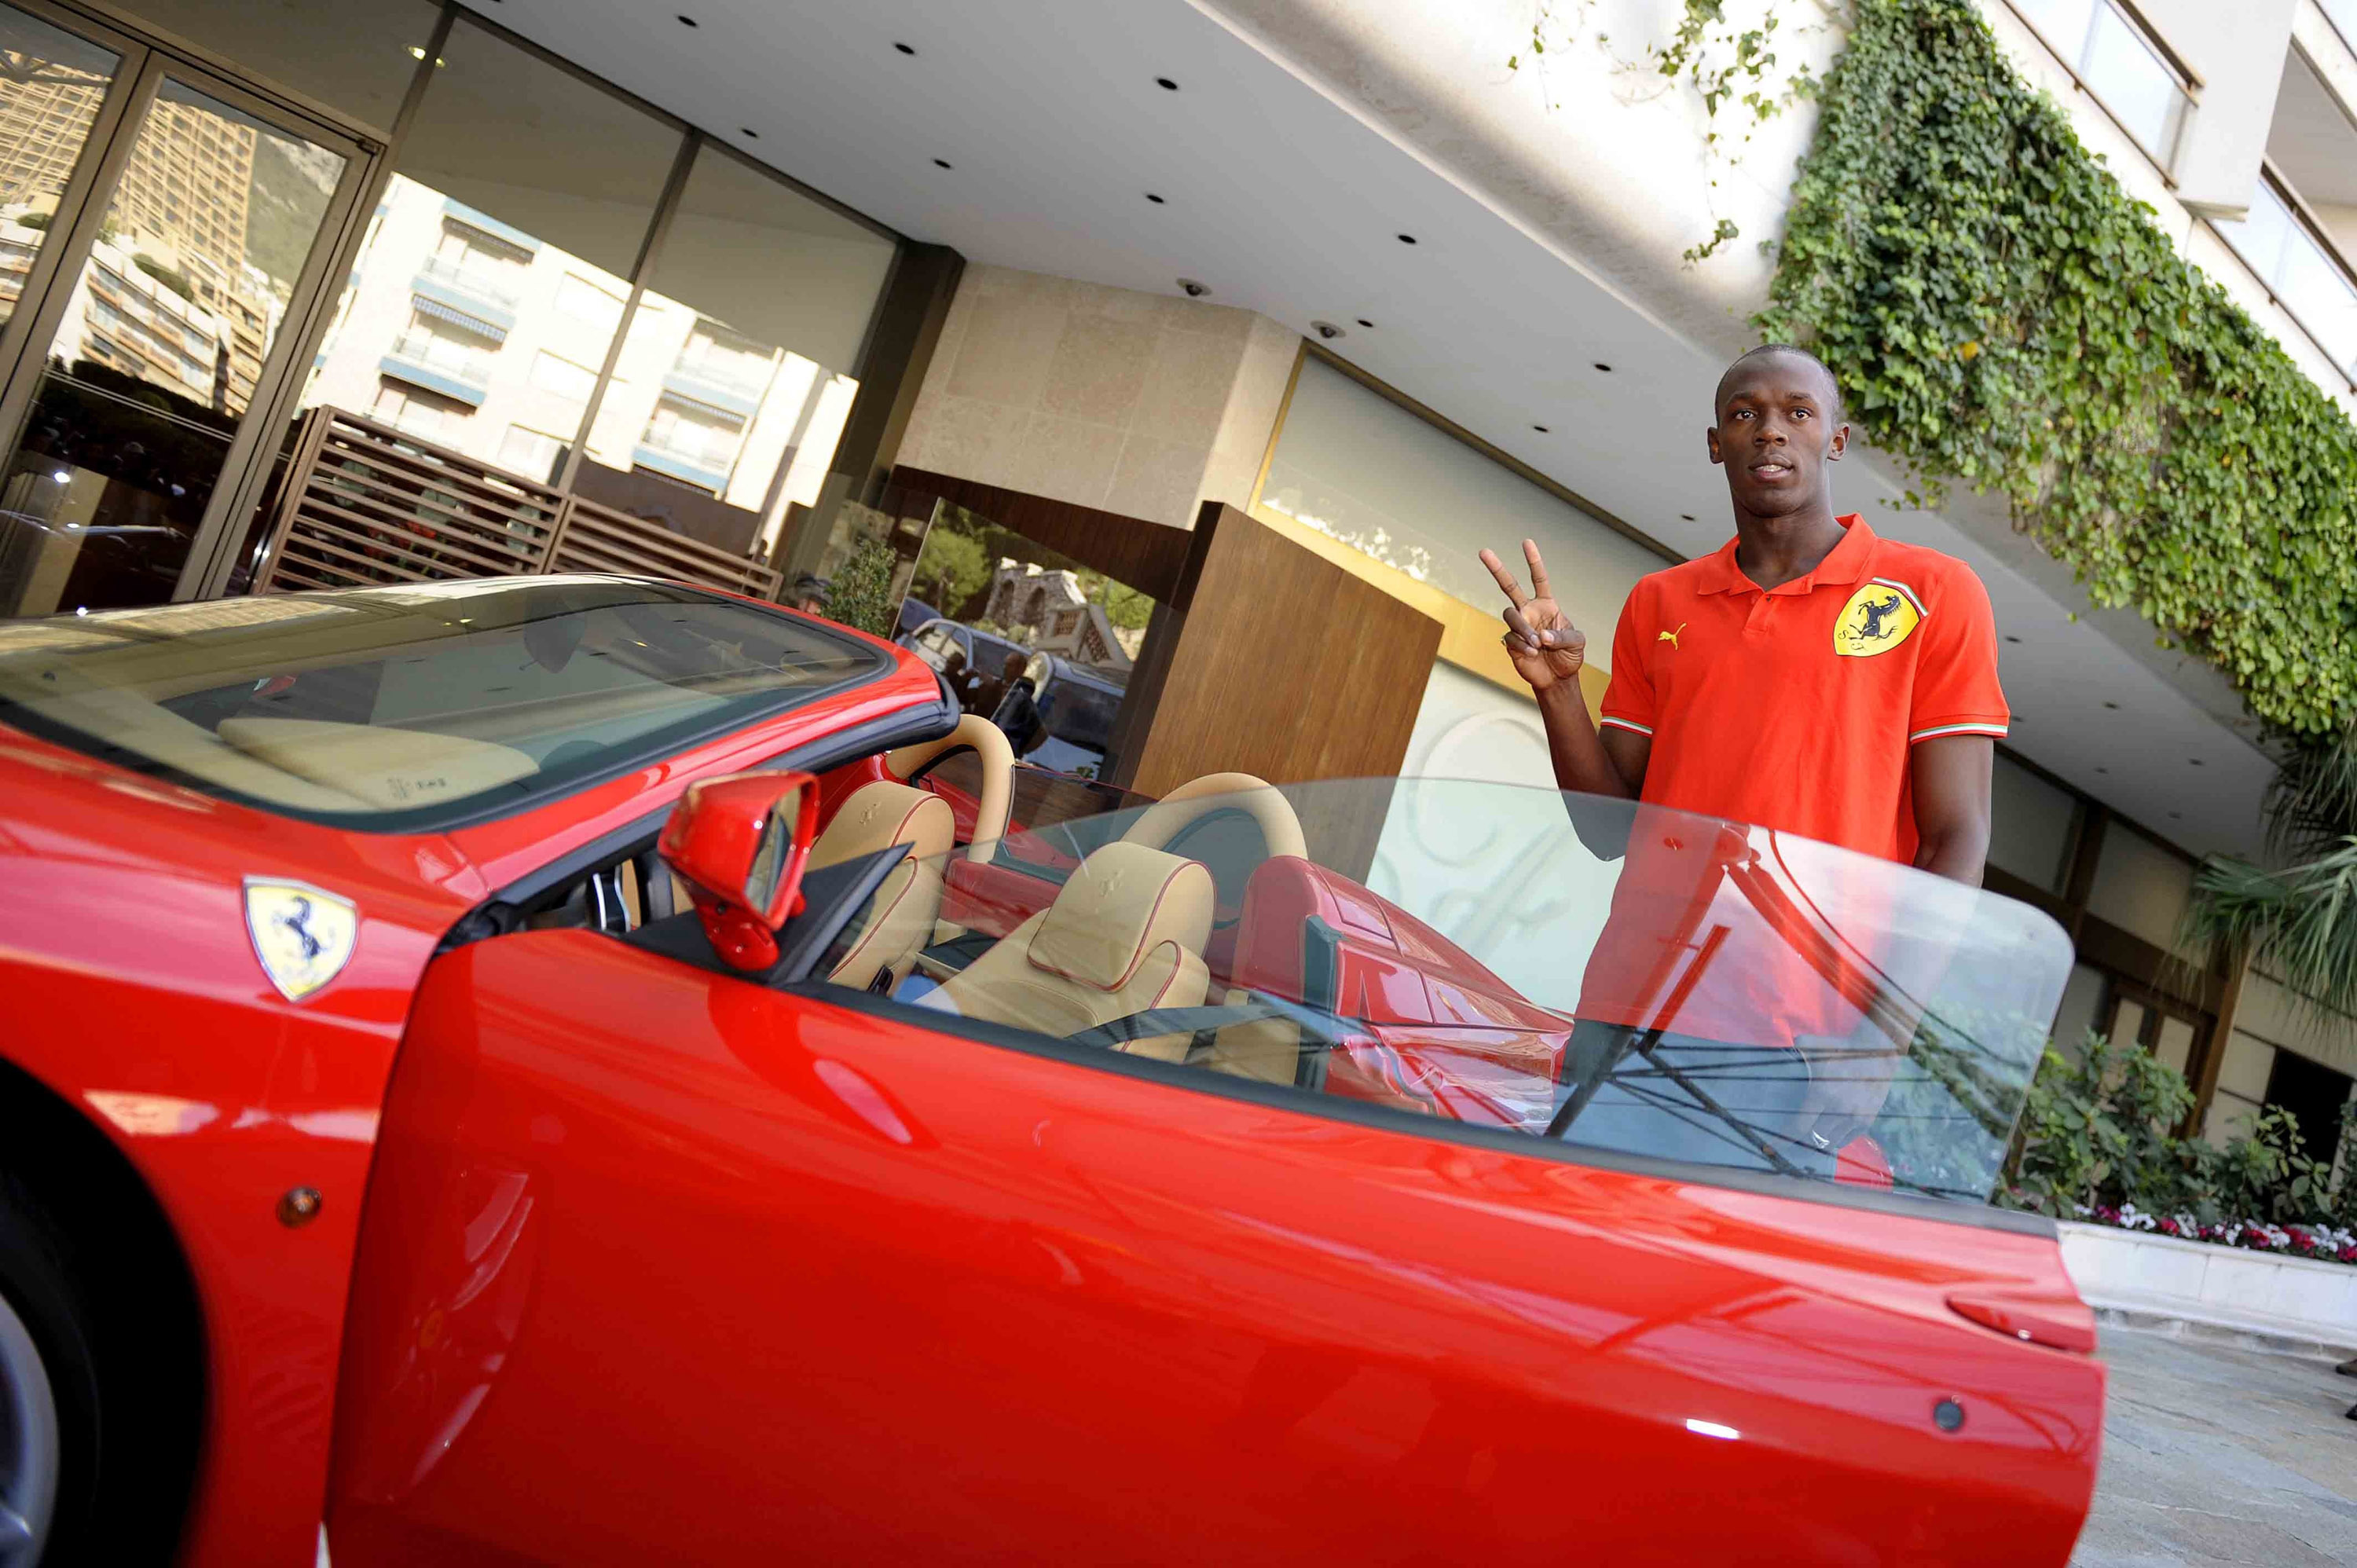 Usain Bolt in Ferrari F430 Spider - Picture 11113